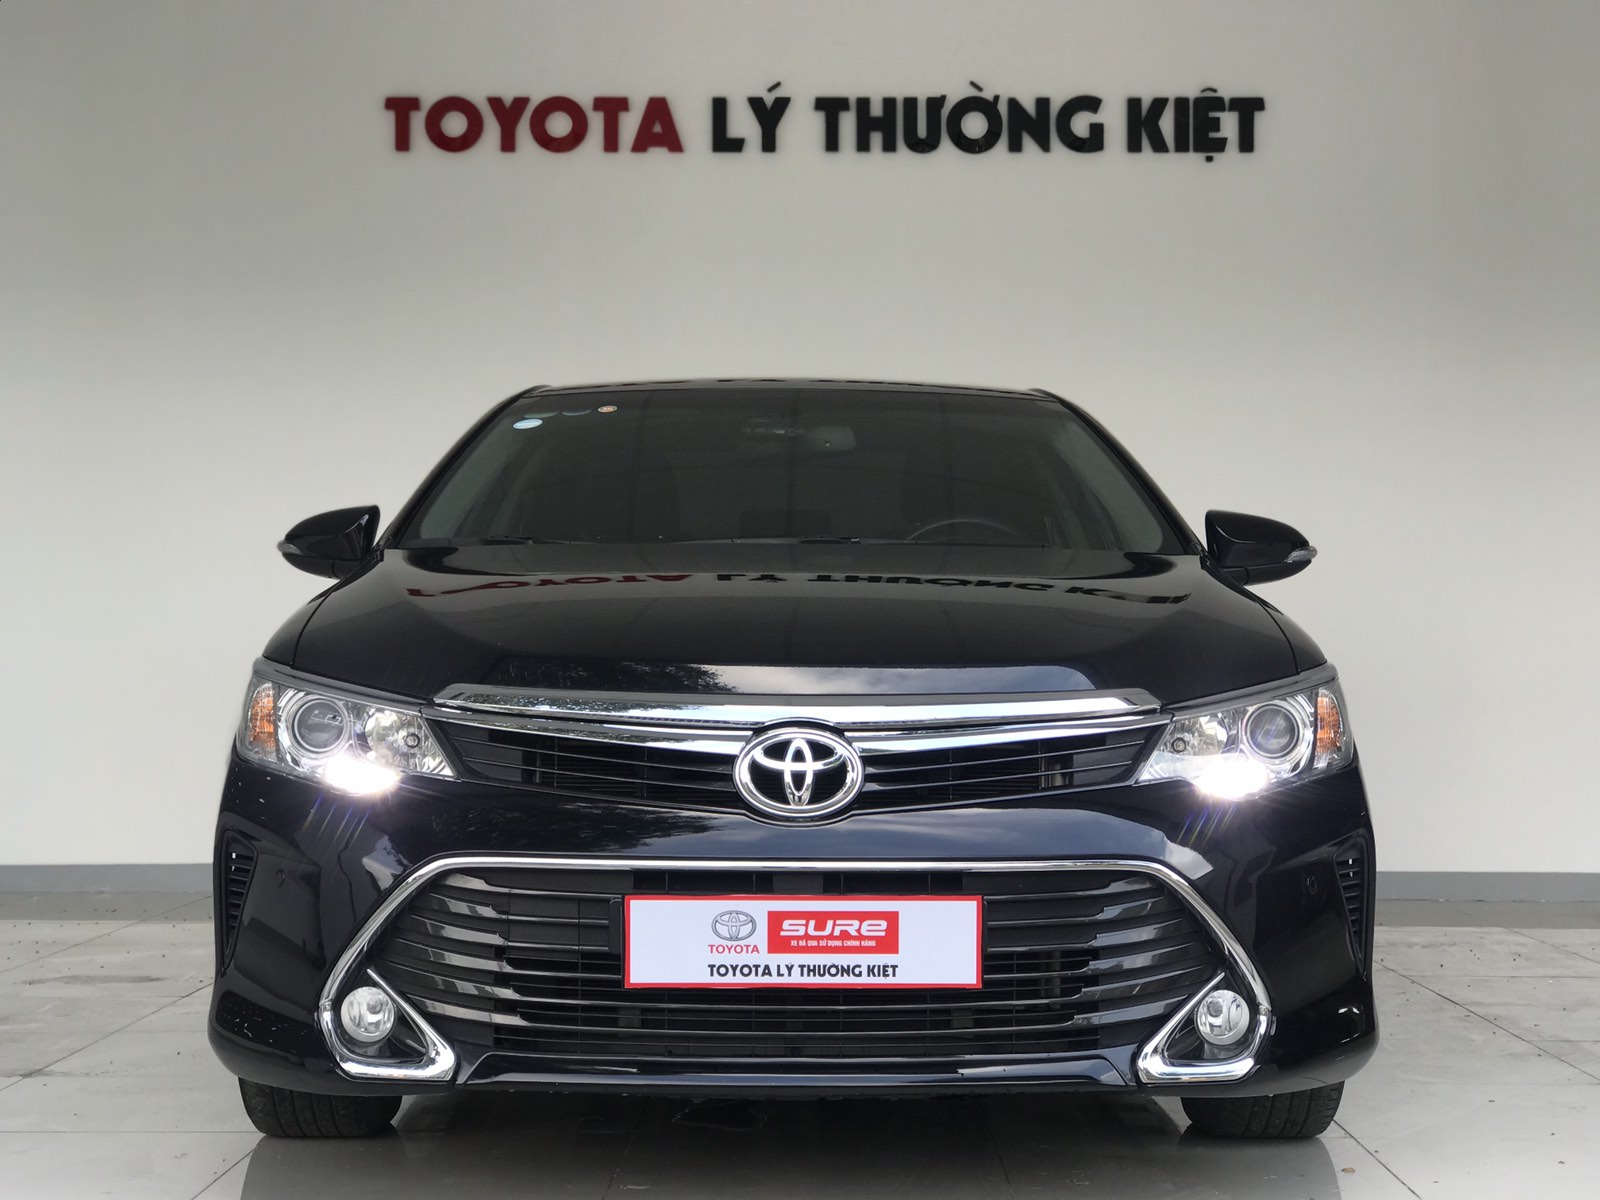 TOYOTA CAMRY 2.5Q (AT) - Date 2017